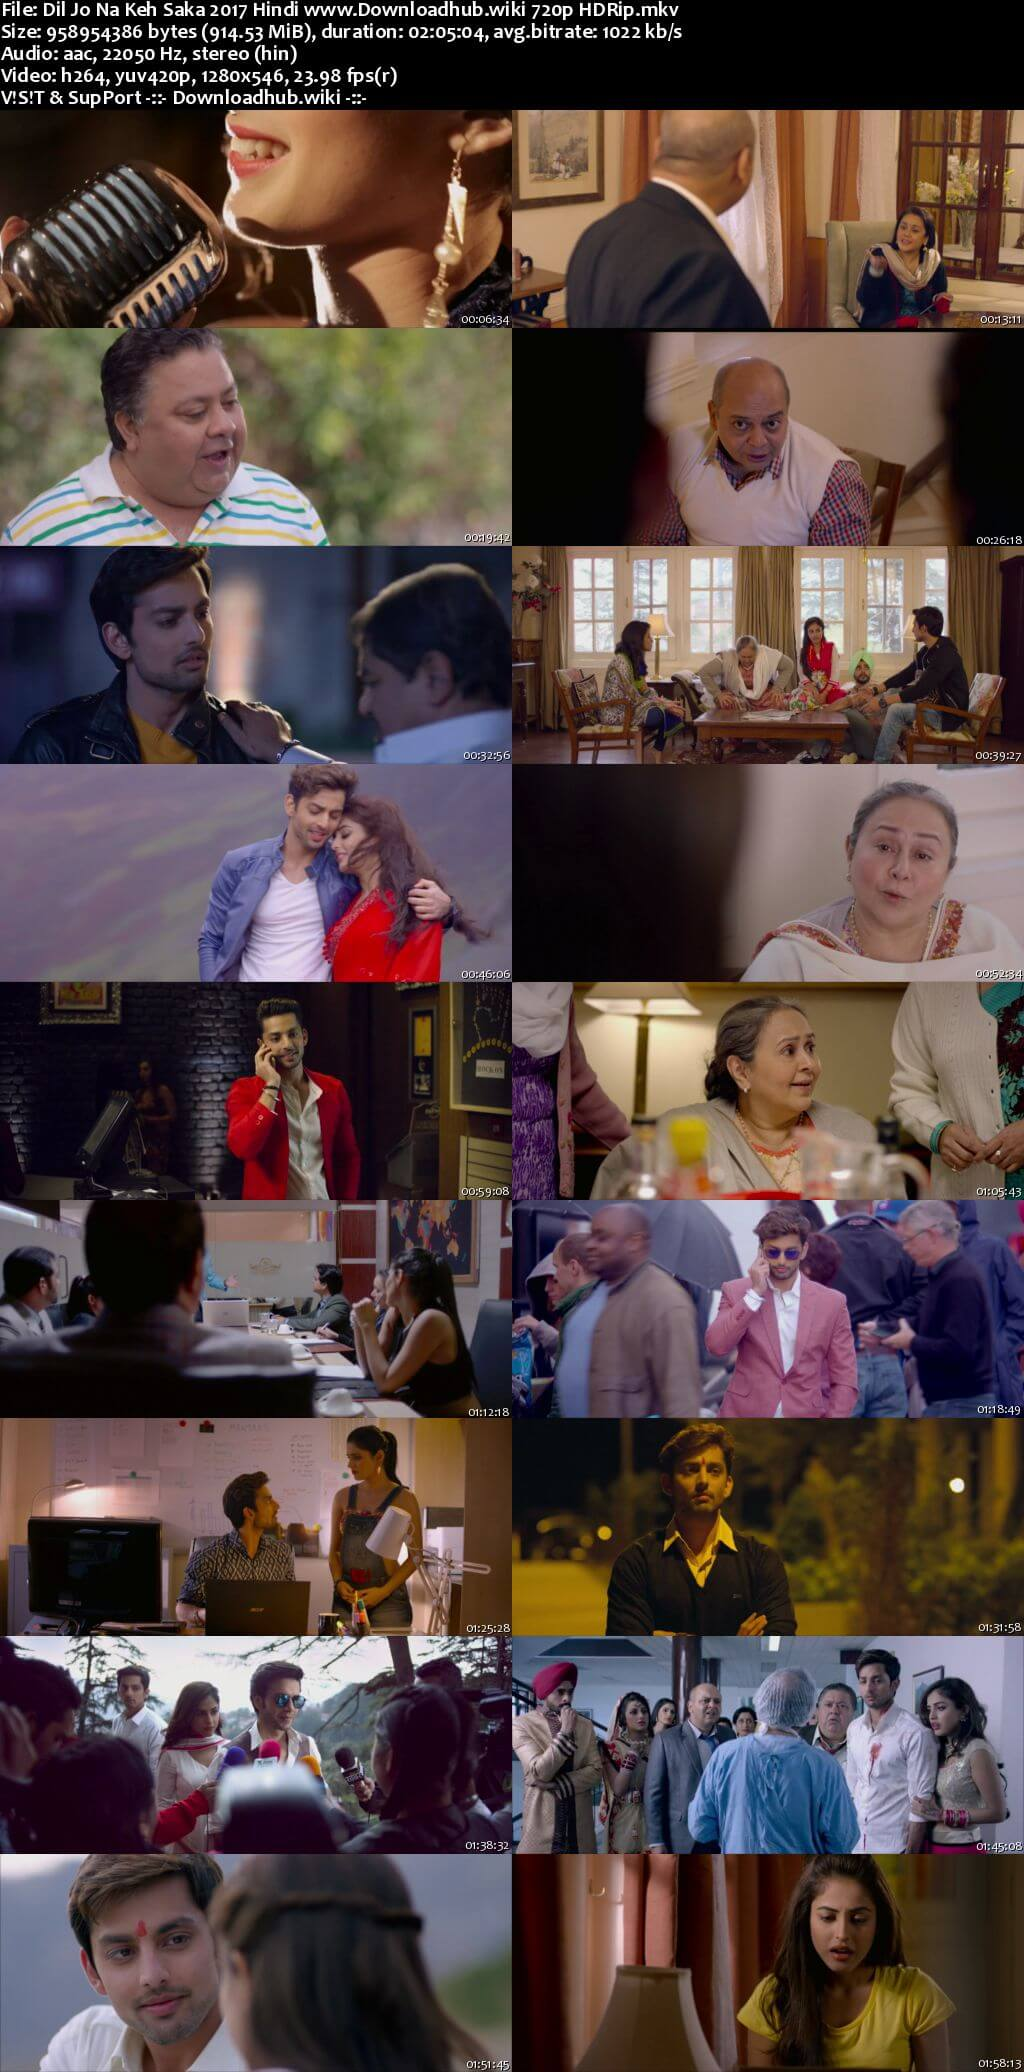 Dil Jo Na Keh Saka 2017 Hindi 720p HDRip x264